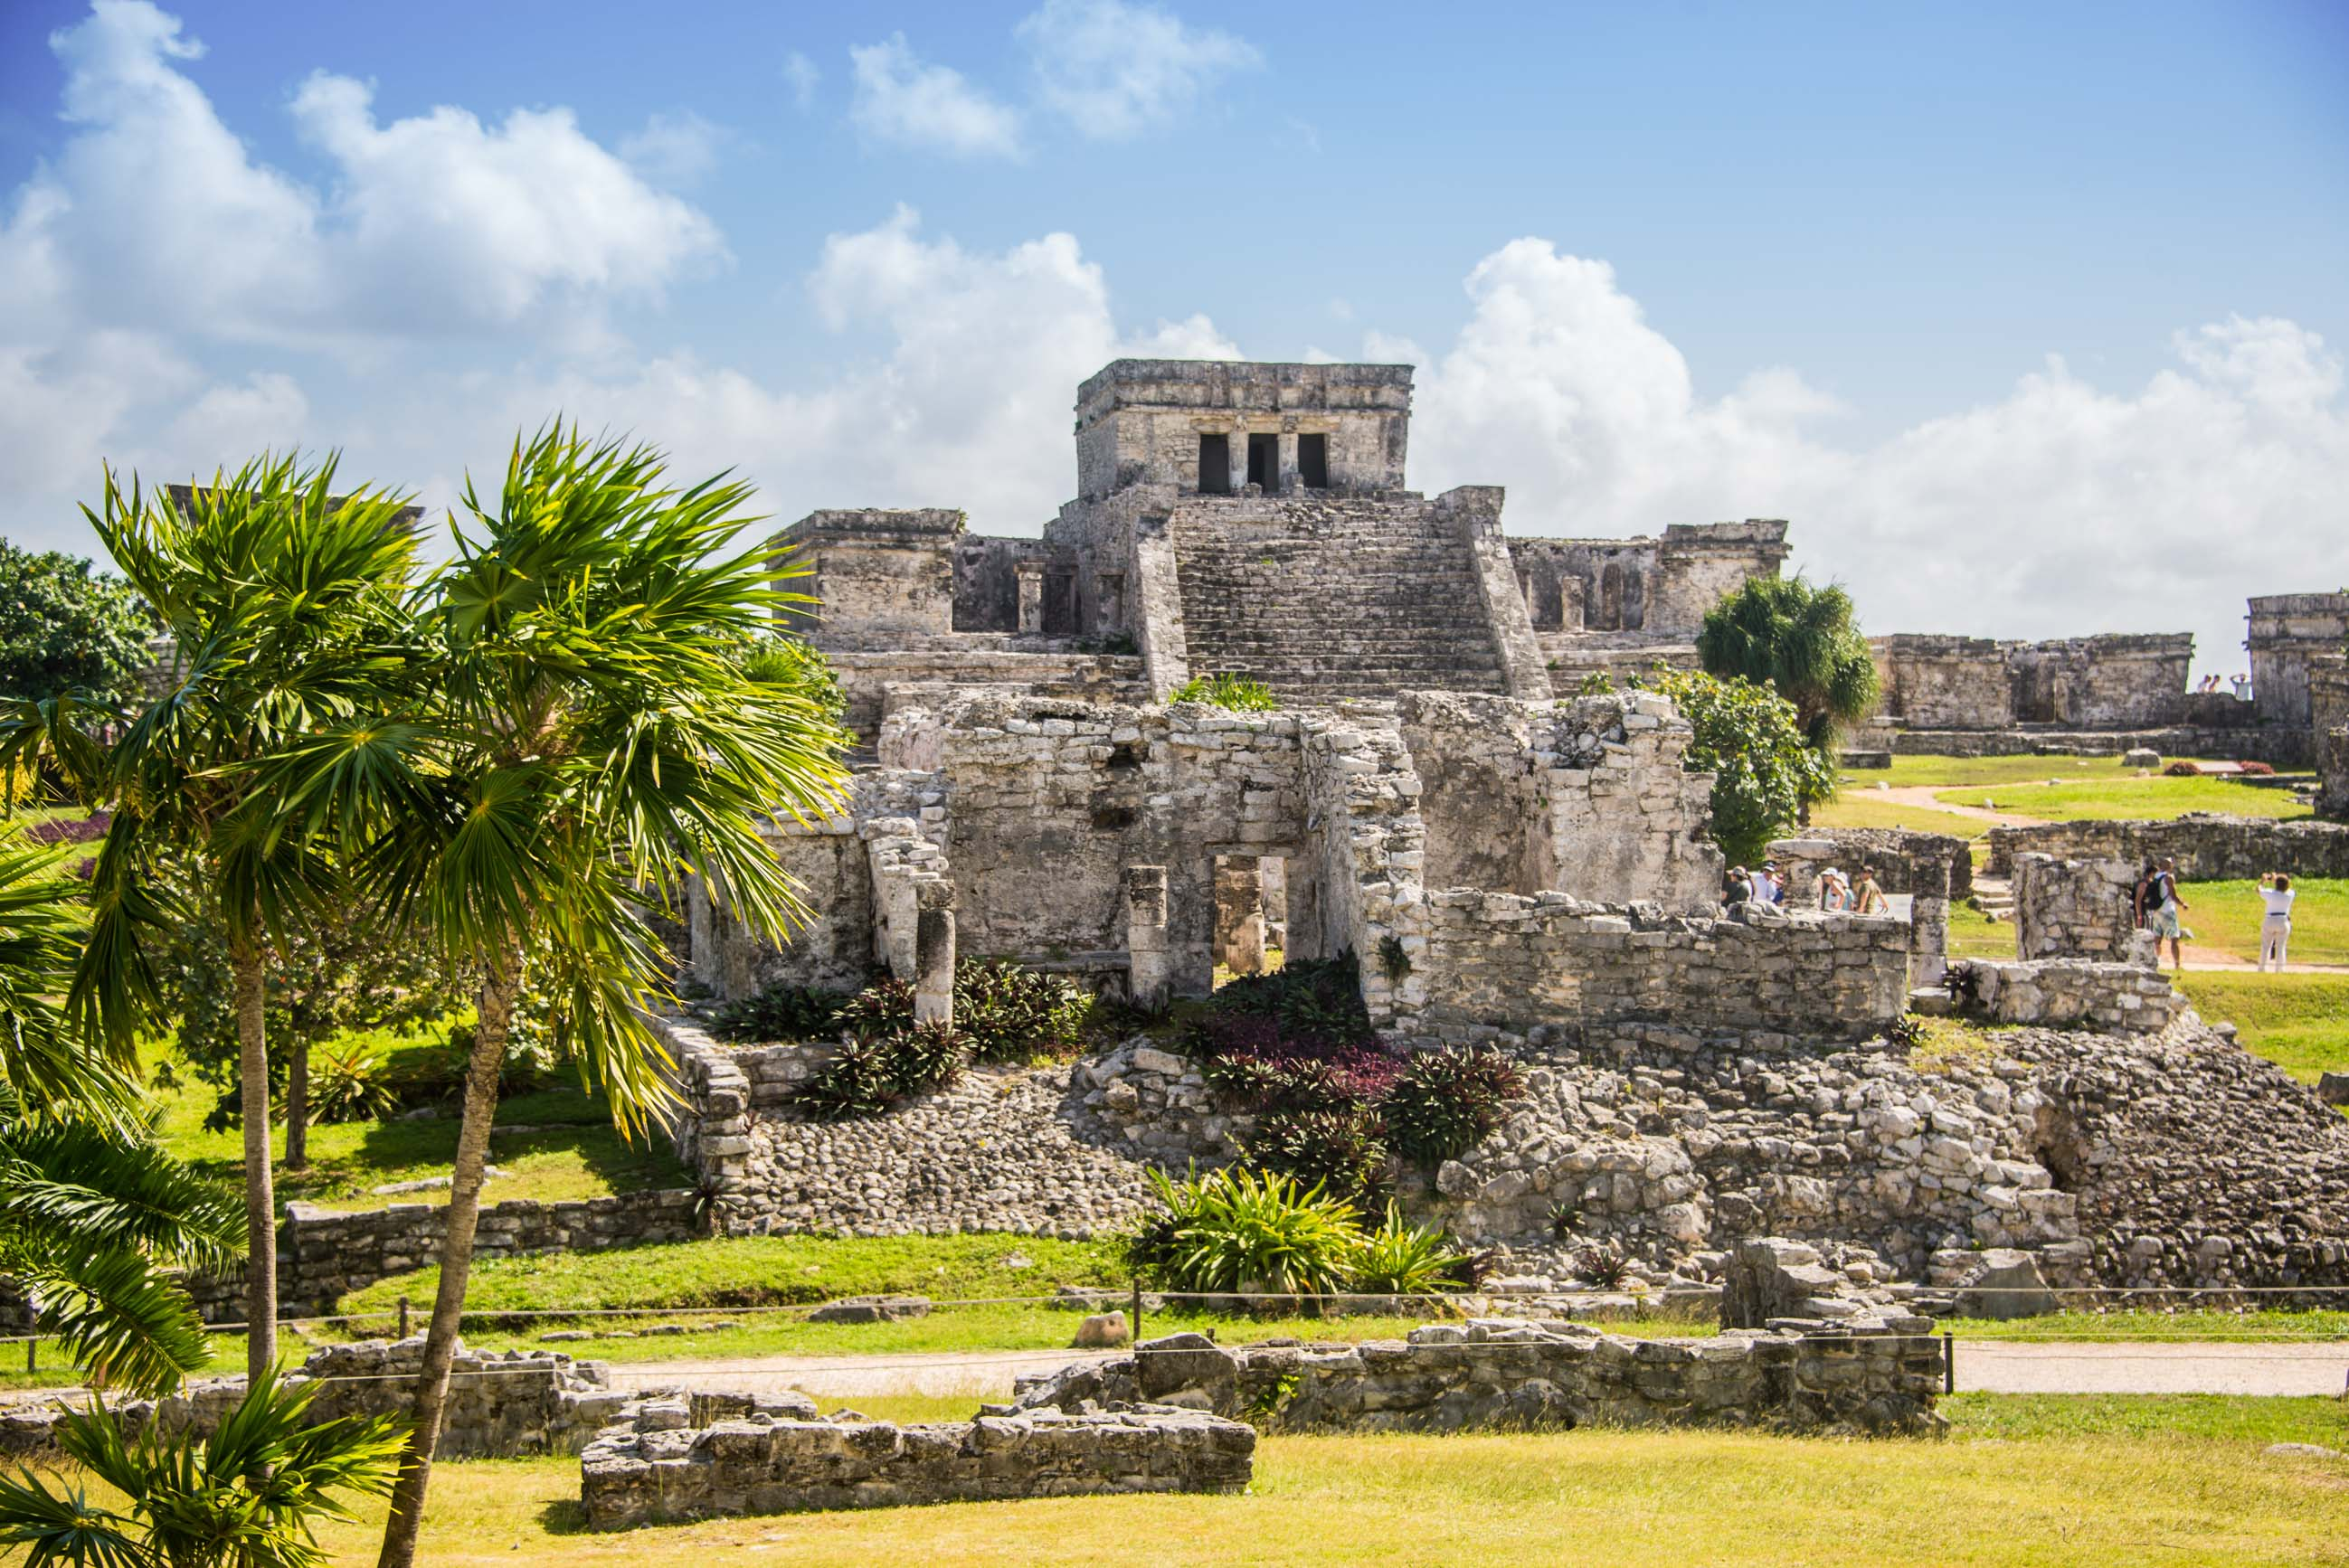 https://bubo.sk/uploads/galleries/3464/shutterstock_mexiko_riviera-maya_260521358-17.jpg